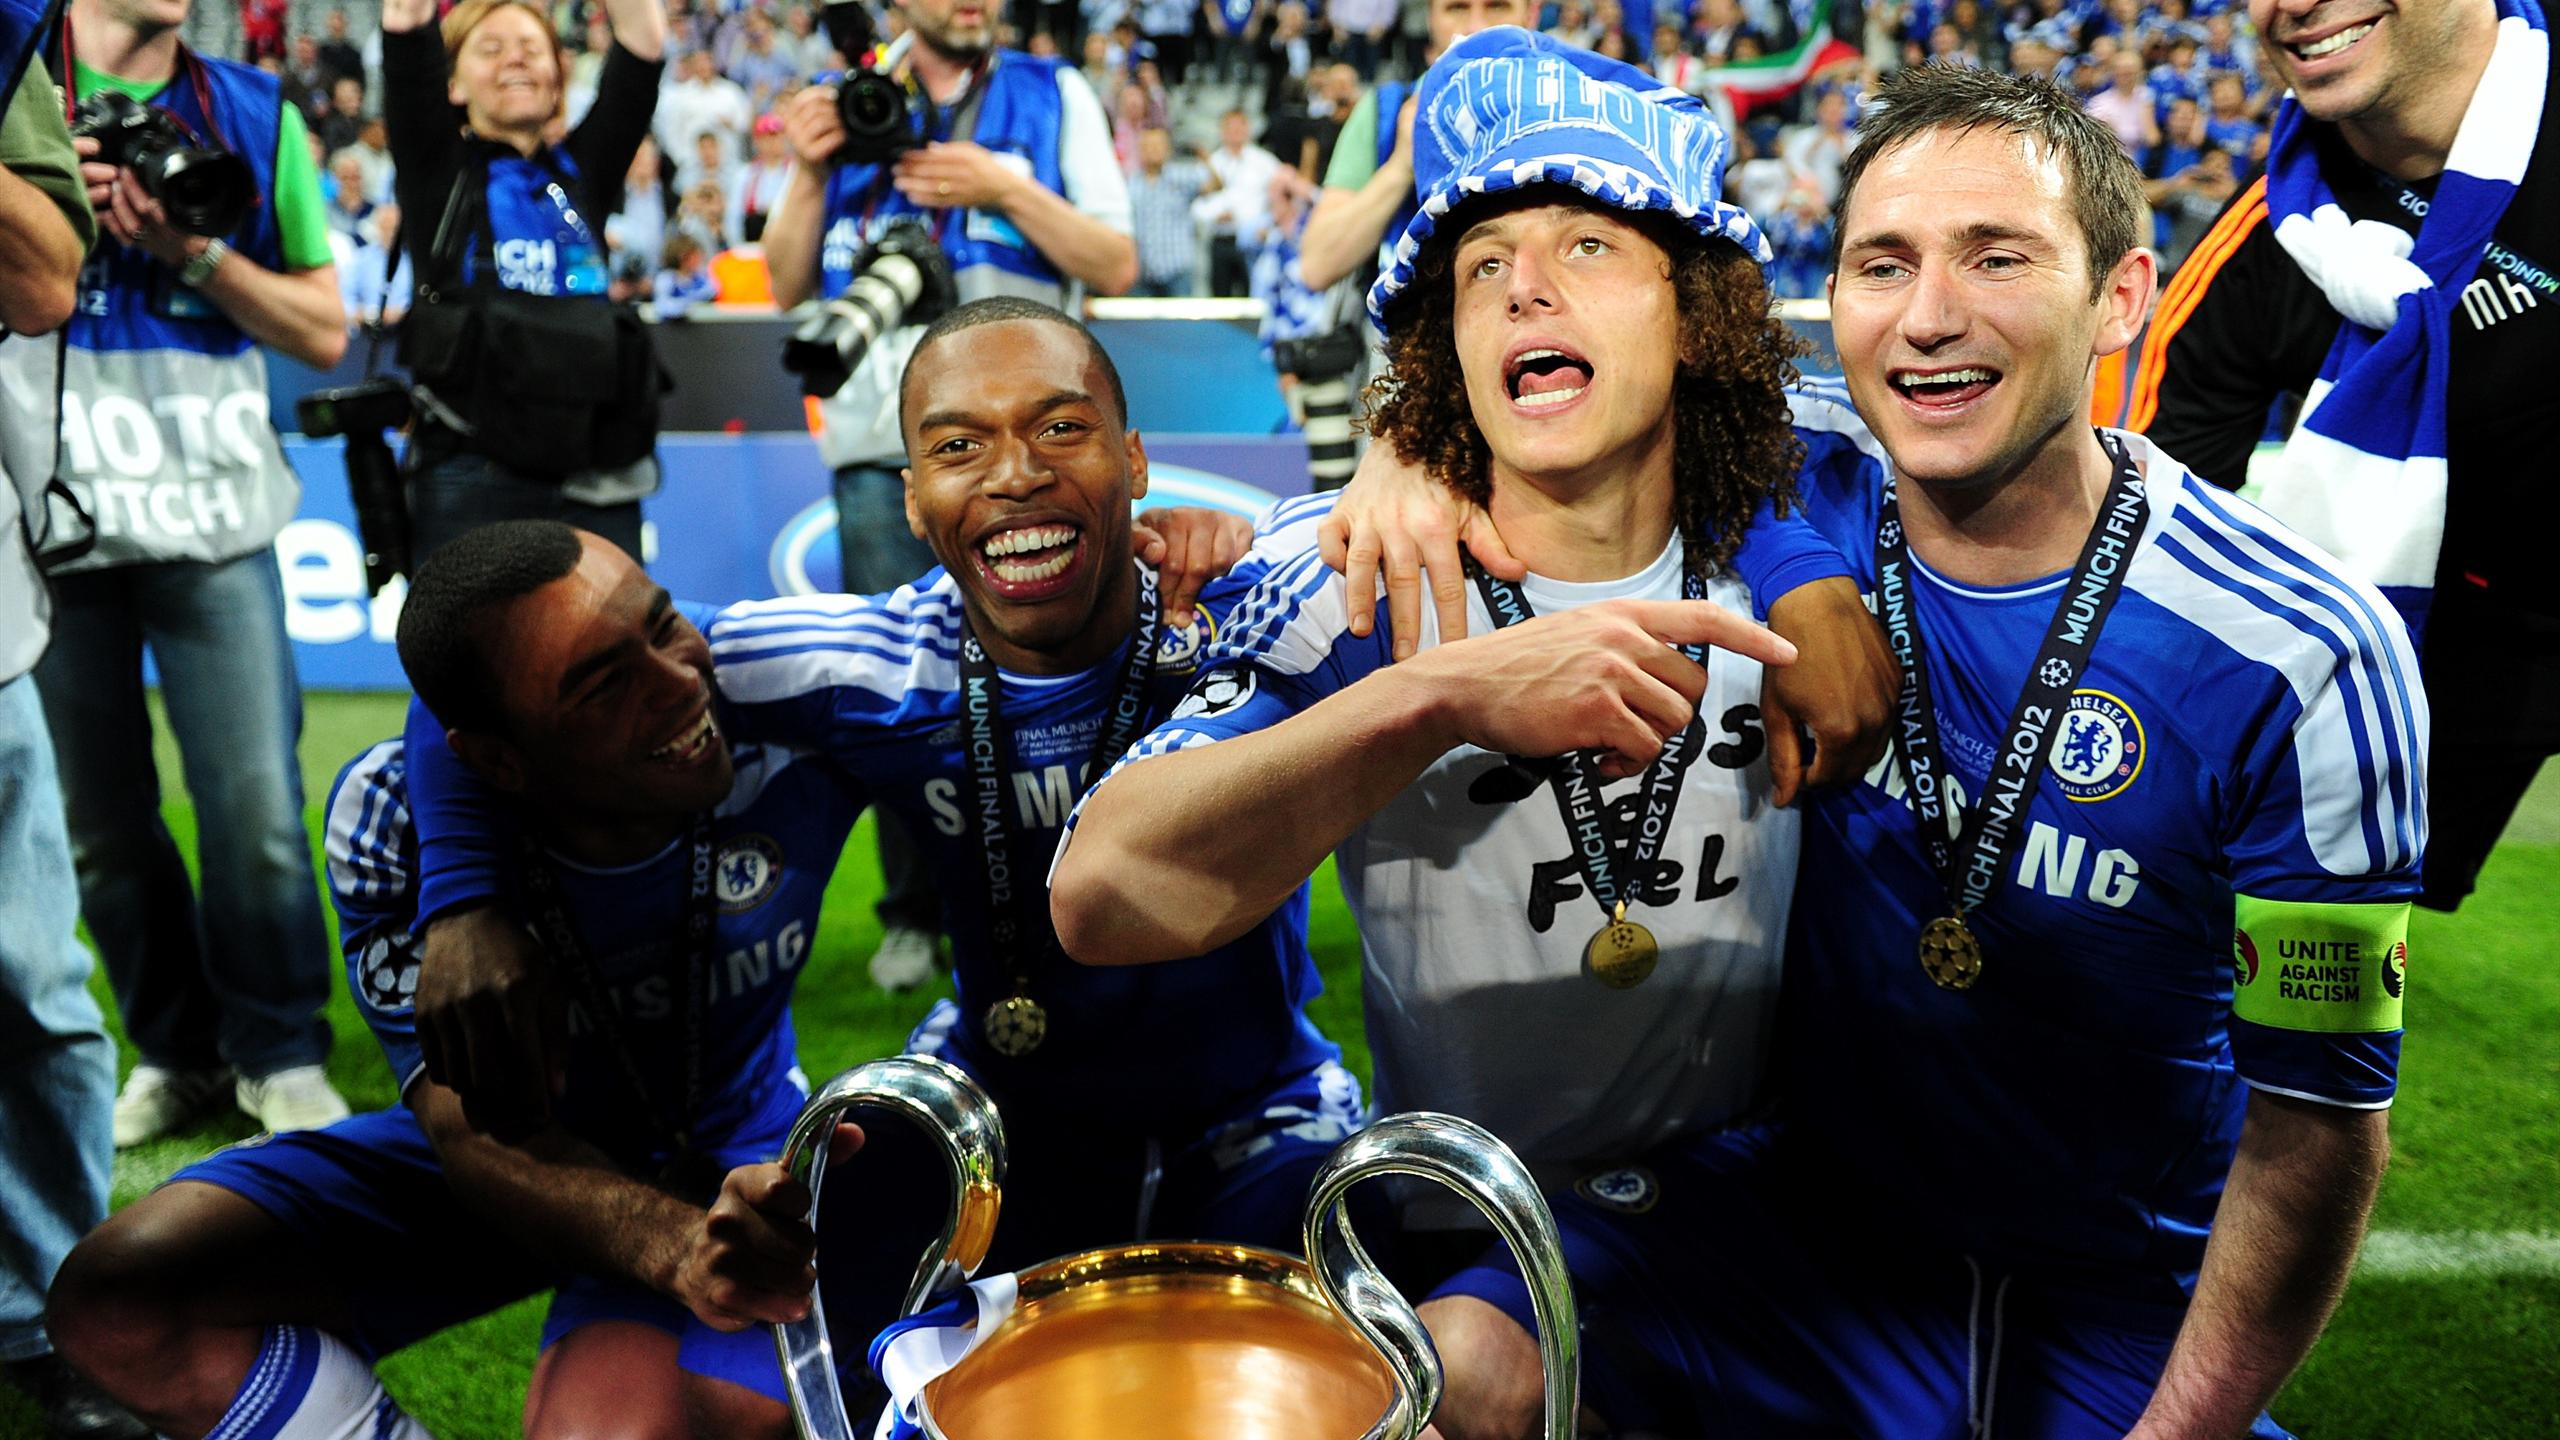 (L-R) Chelsea's Ashley Cole, Daniel Sturridge, David Luiz and Frank Lampard celebrate with the UEFA Champions League trophy after the game